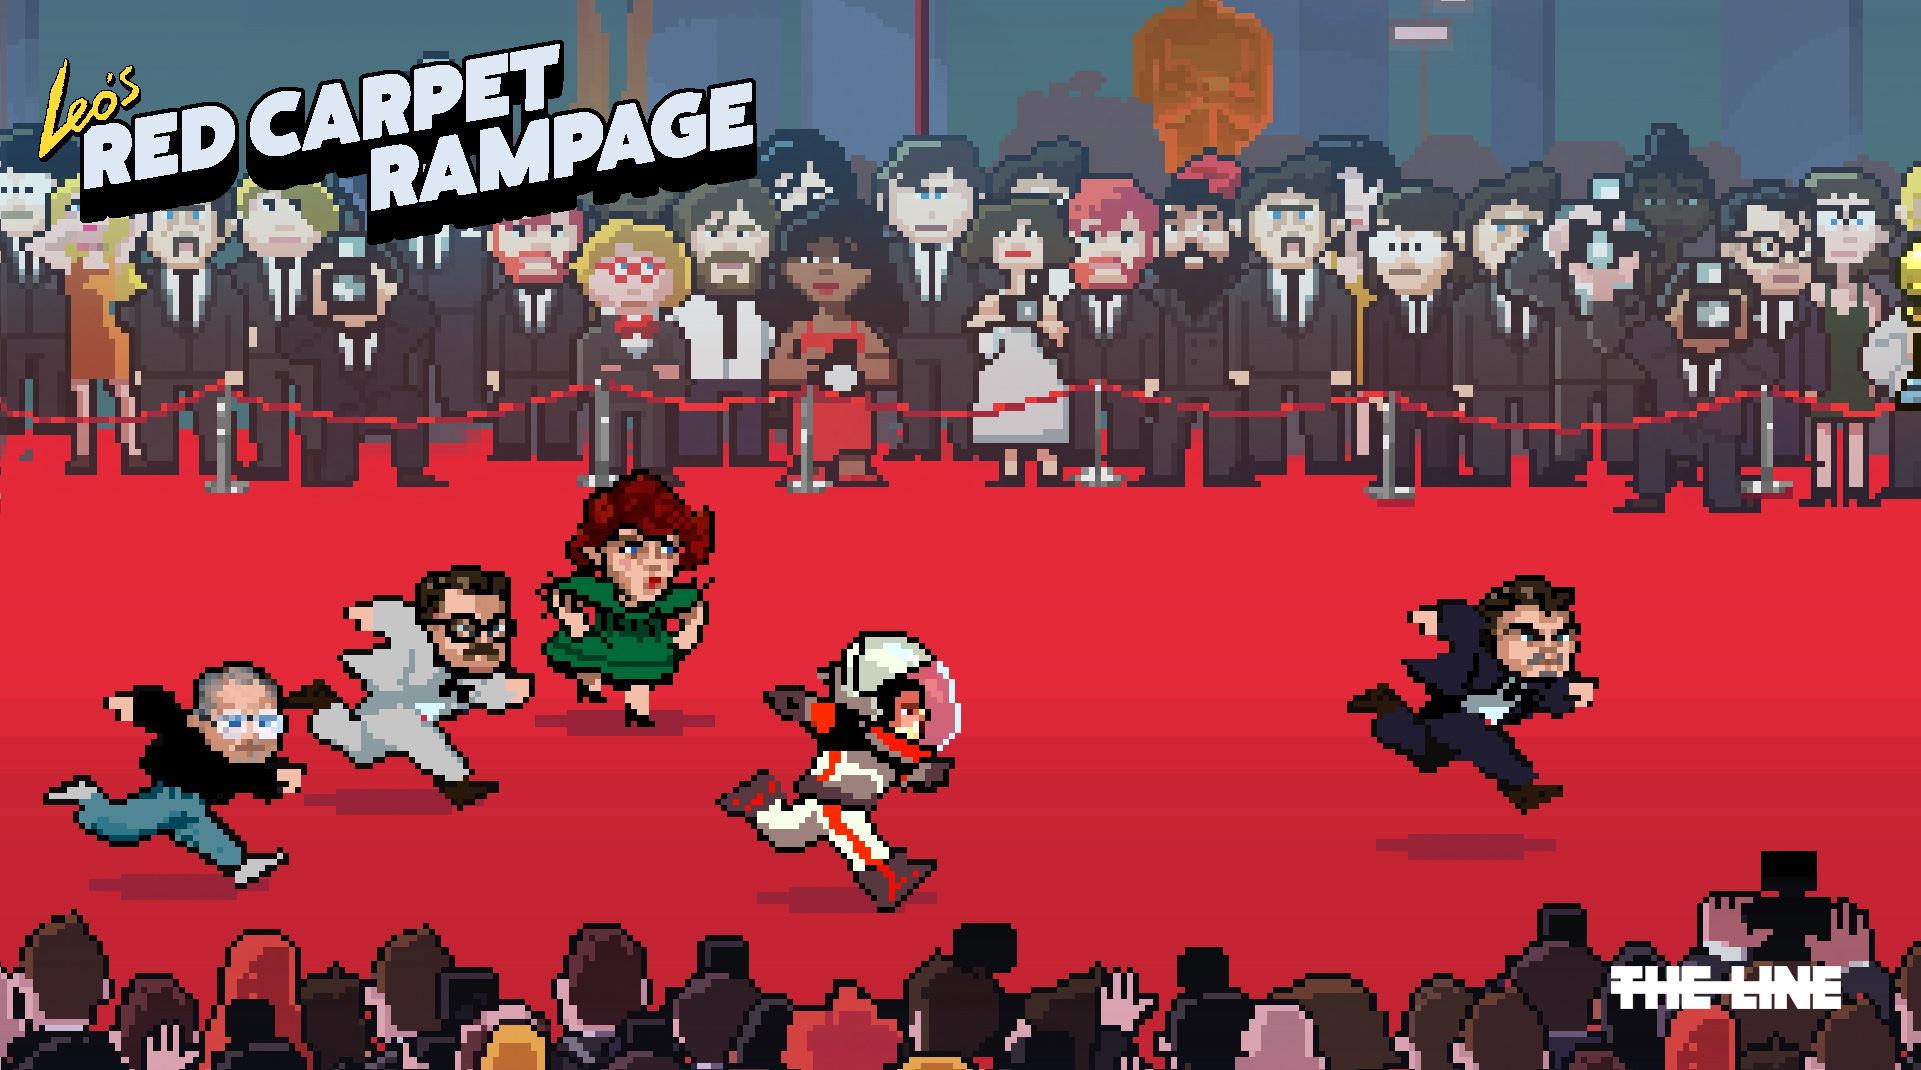 Help Leonardo DiCaprio win his first Oscar in amazingly funny web game, playable on mobile